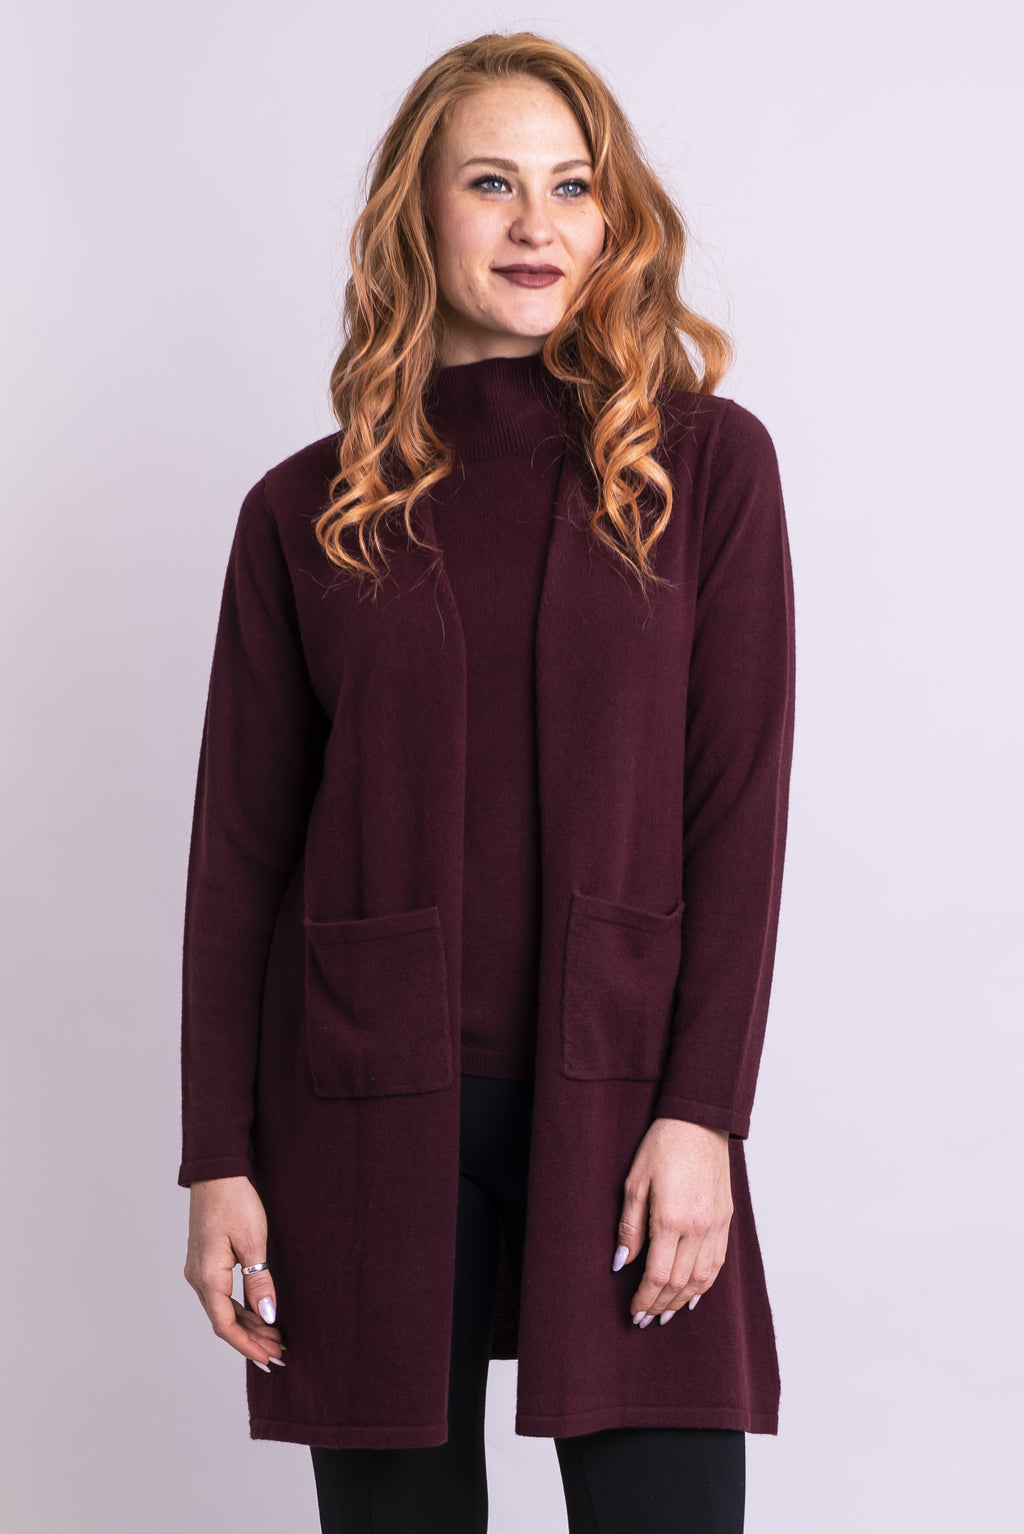 Slick Sweater, Garnet, Cashmere - Blue Sky Clothing Co